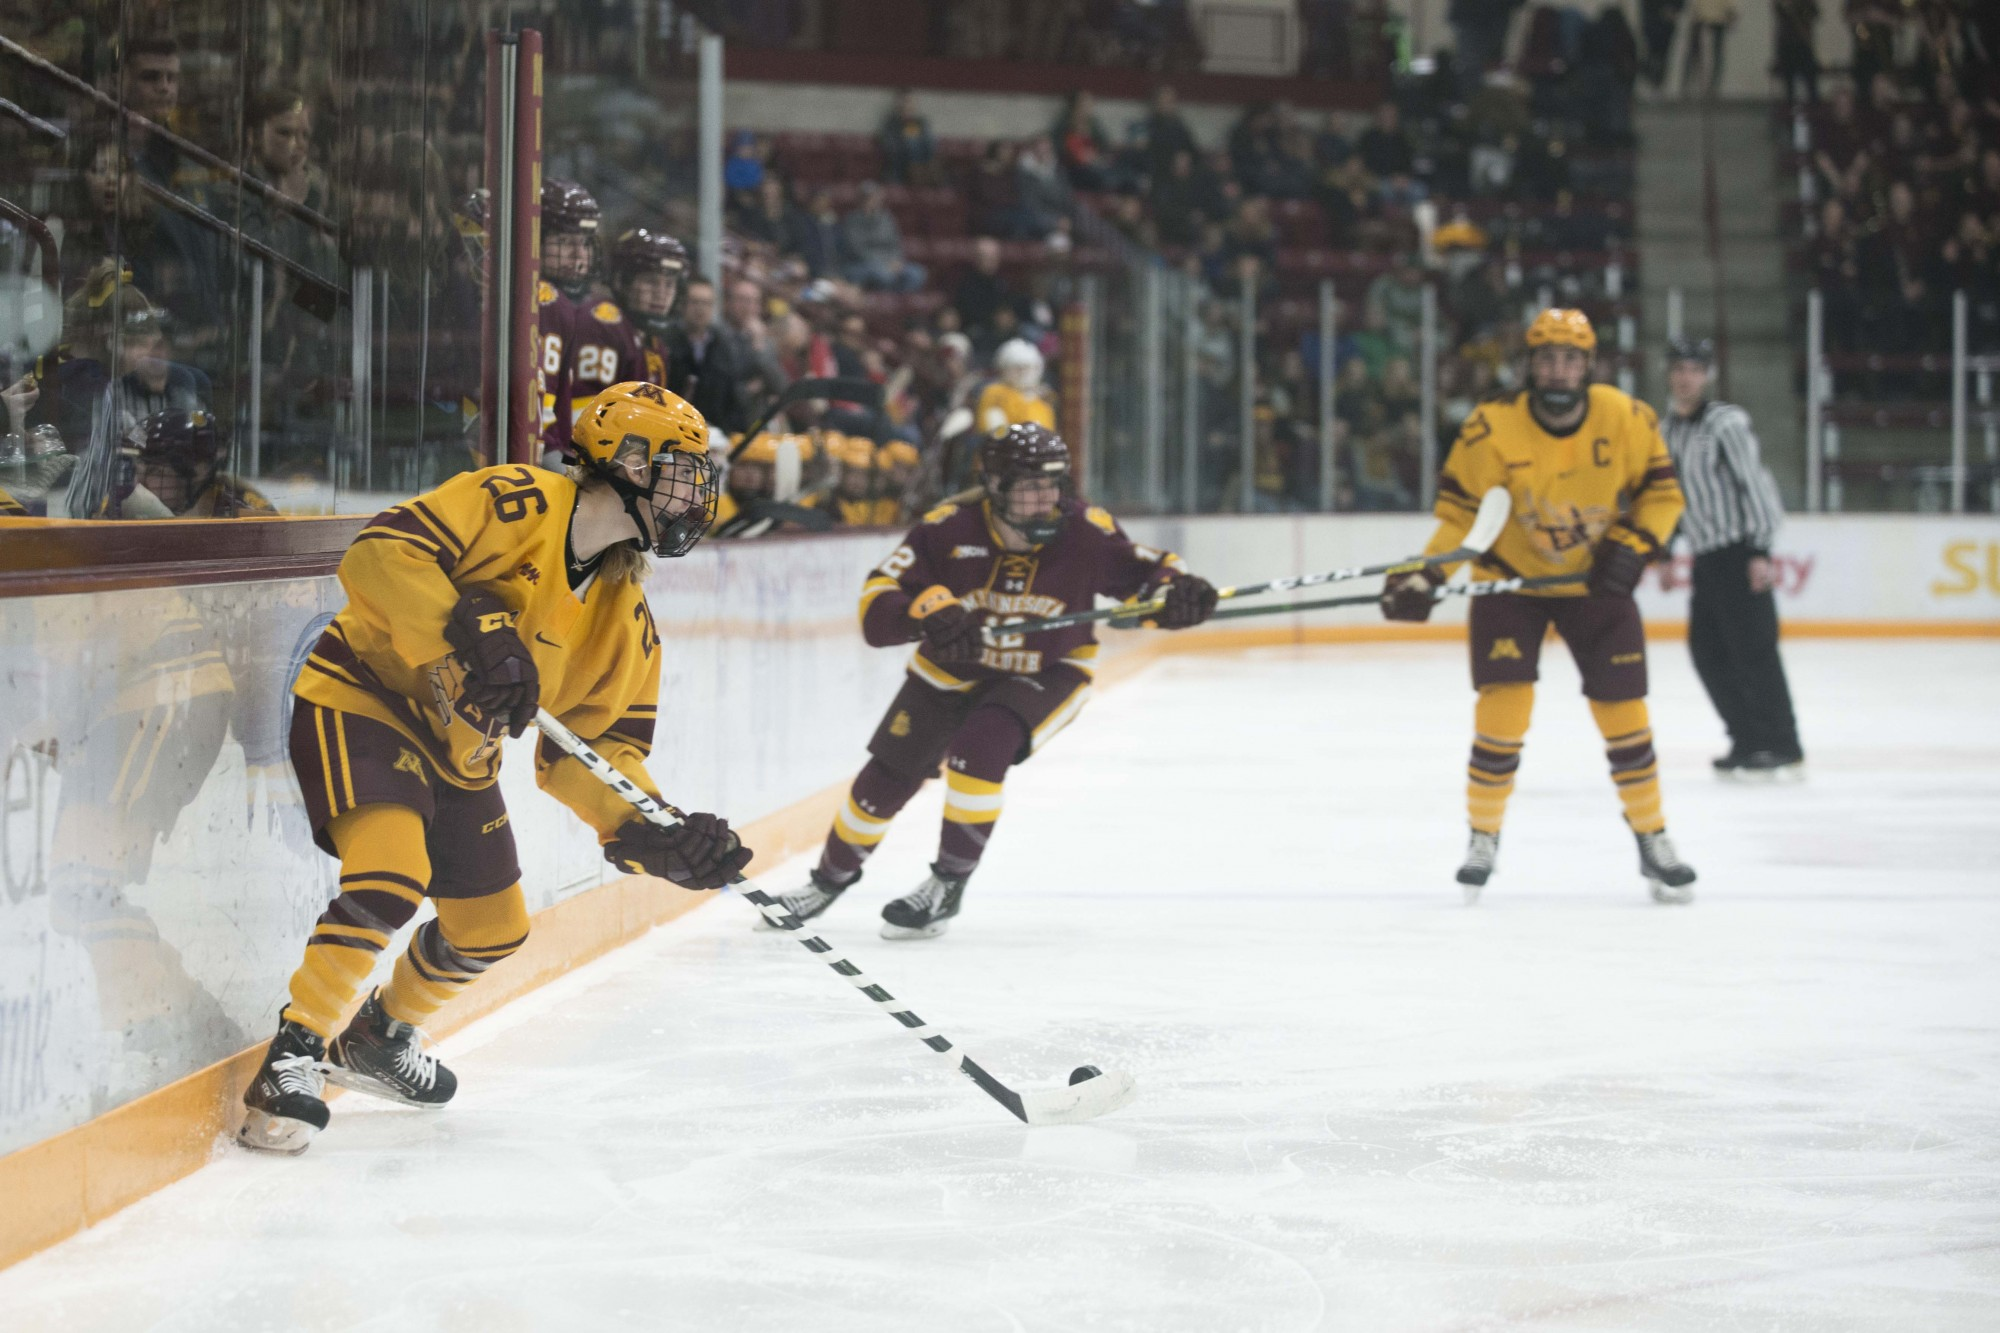 Forward Sarah Potomak looks to pass the puck at Ridder Arena on Saturday, Feb. 1. The Gophers lost to Minnesota Duluth 0-2.